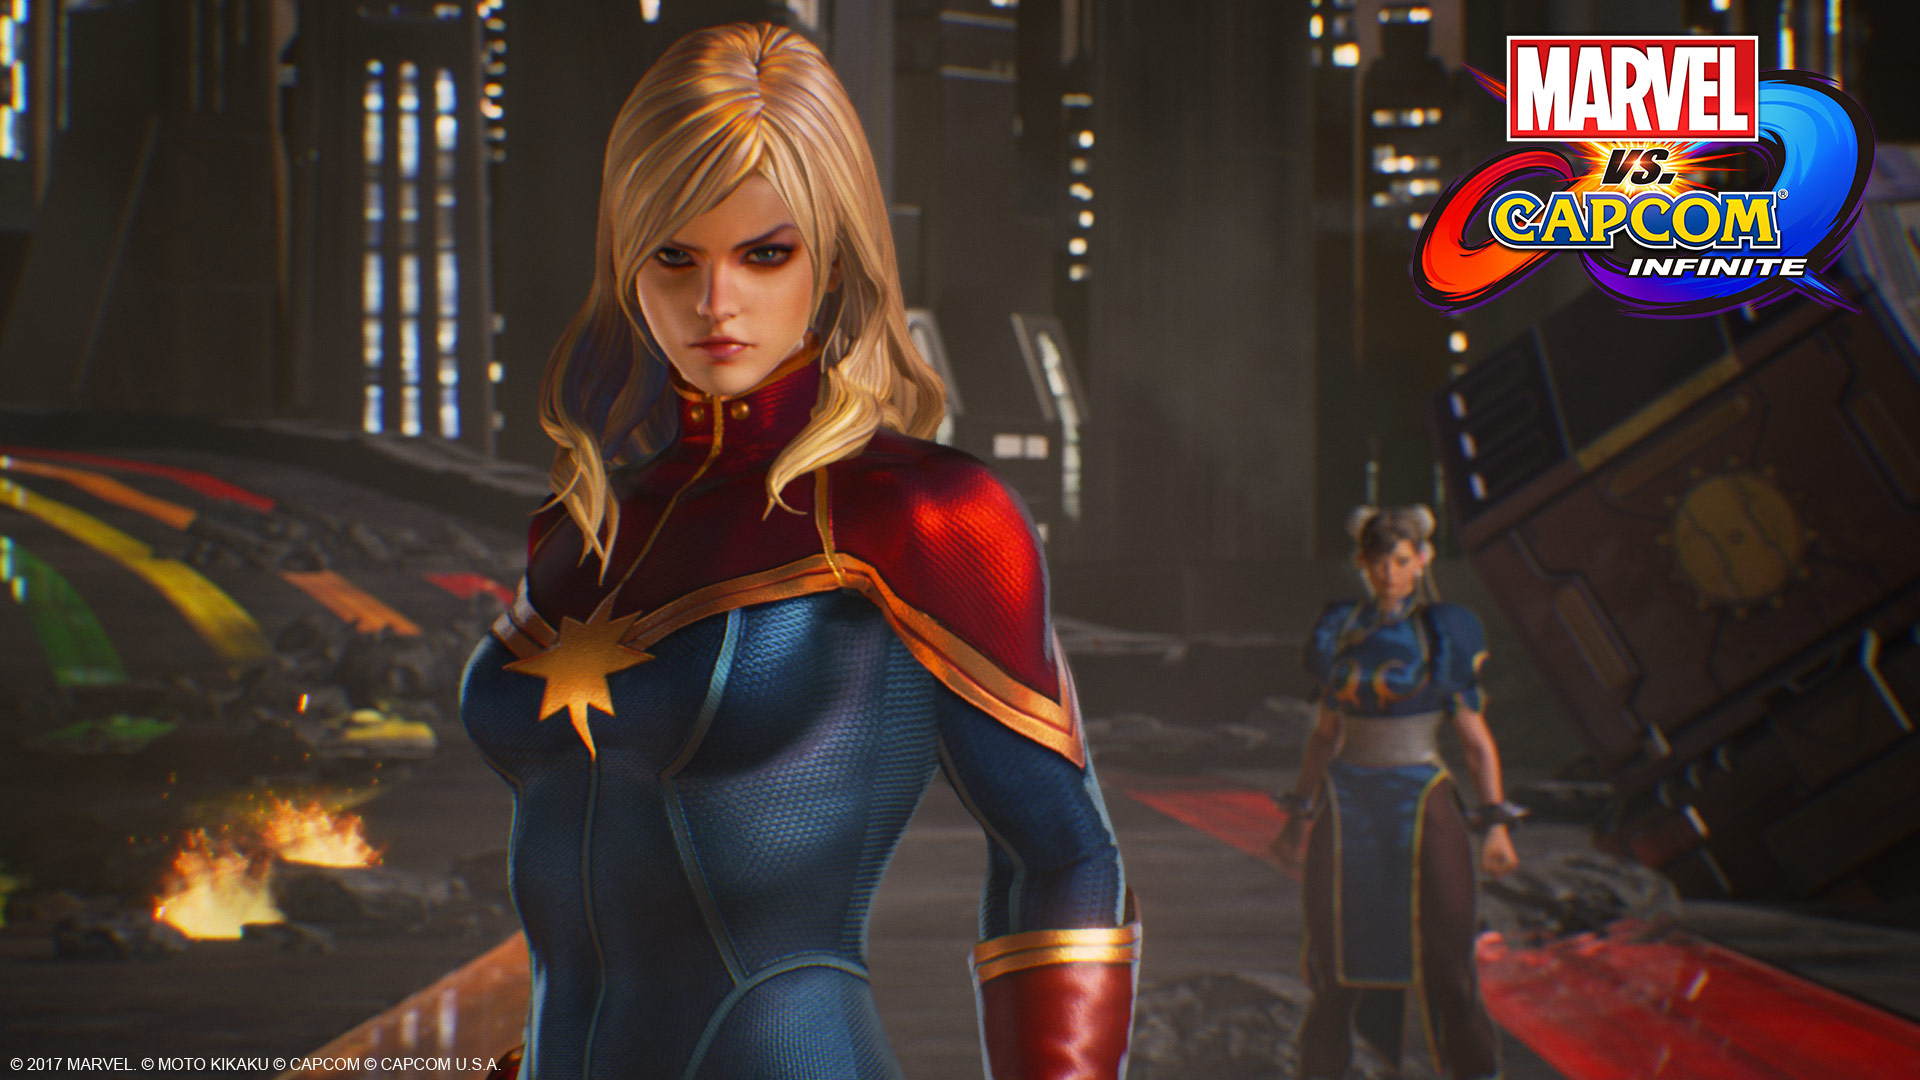 Marvel vs. Capcom: Infinite cover art and new character images from E3 2017 18 out of 26 image gallery